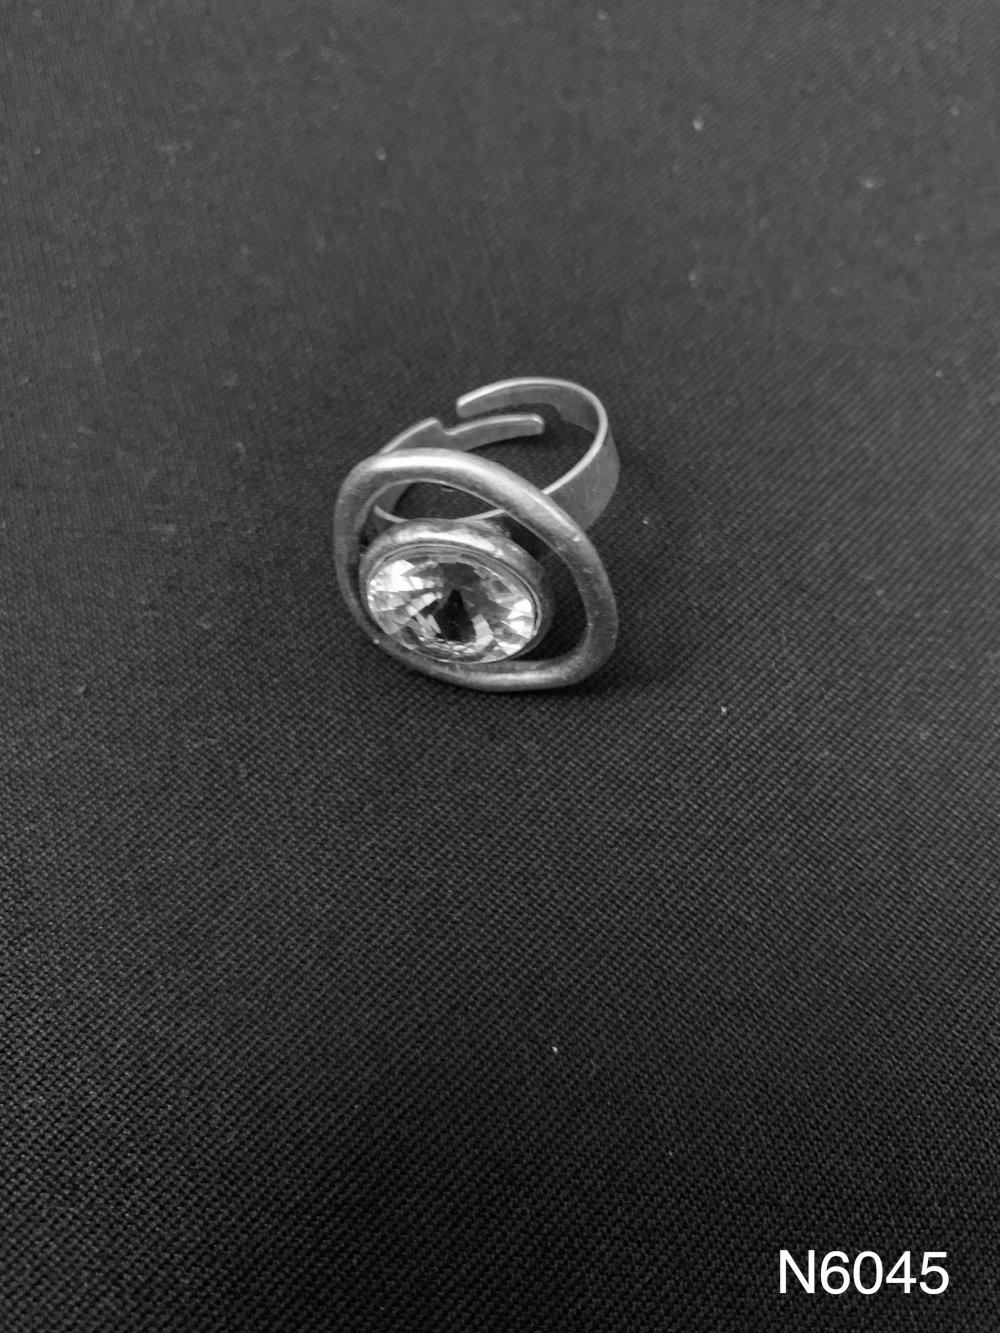 GLASS STONE RING N6045